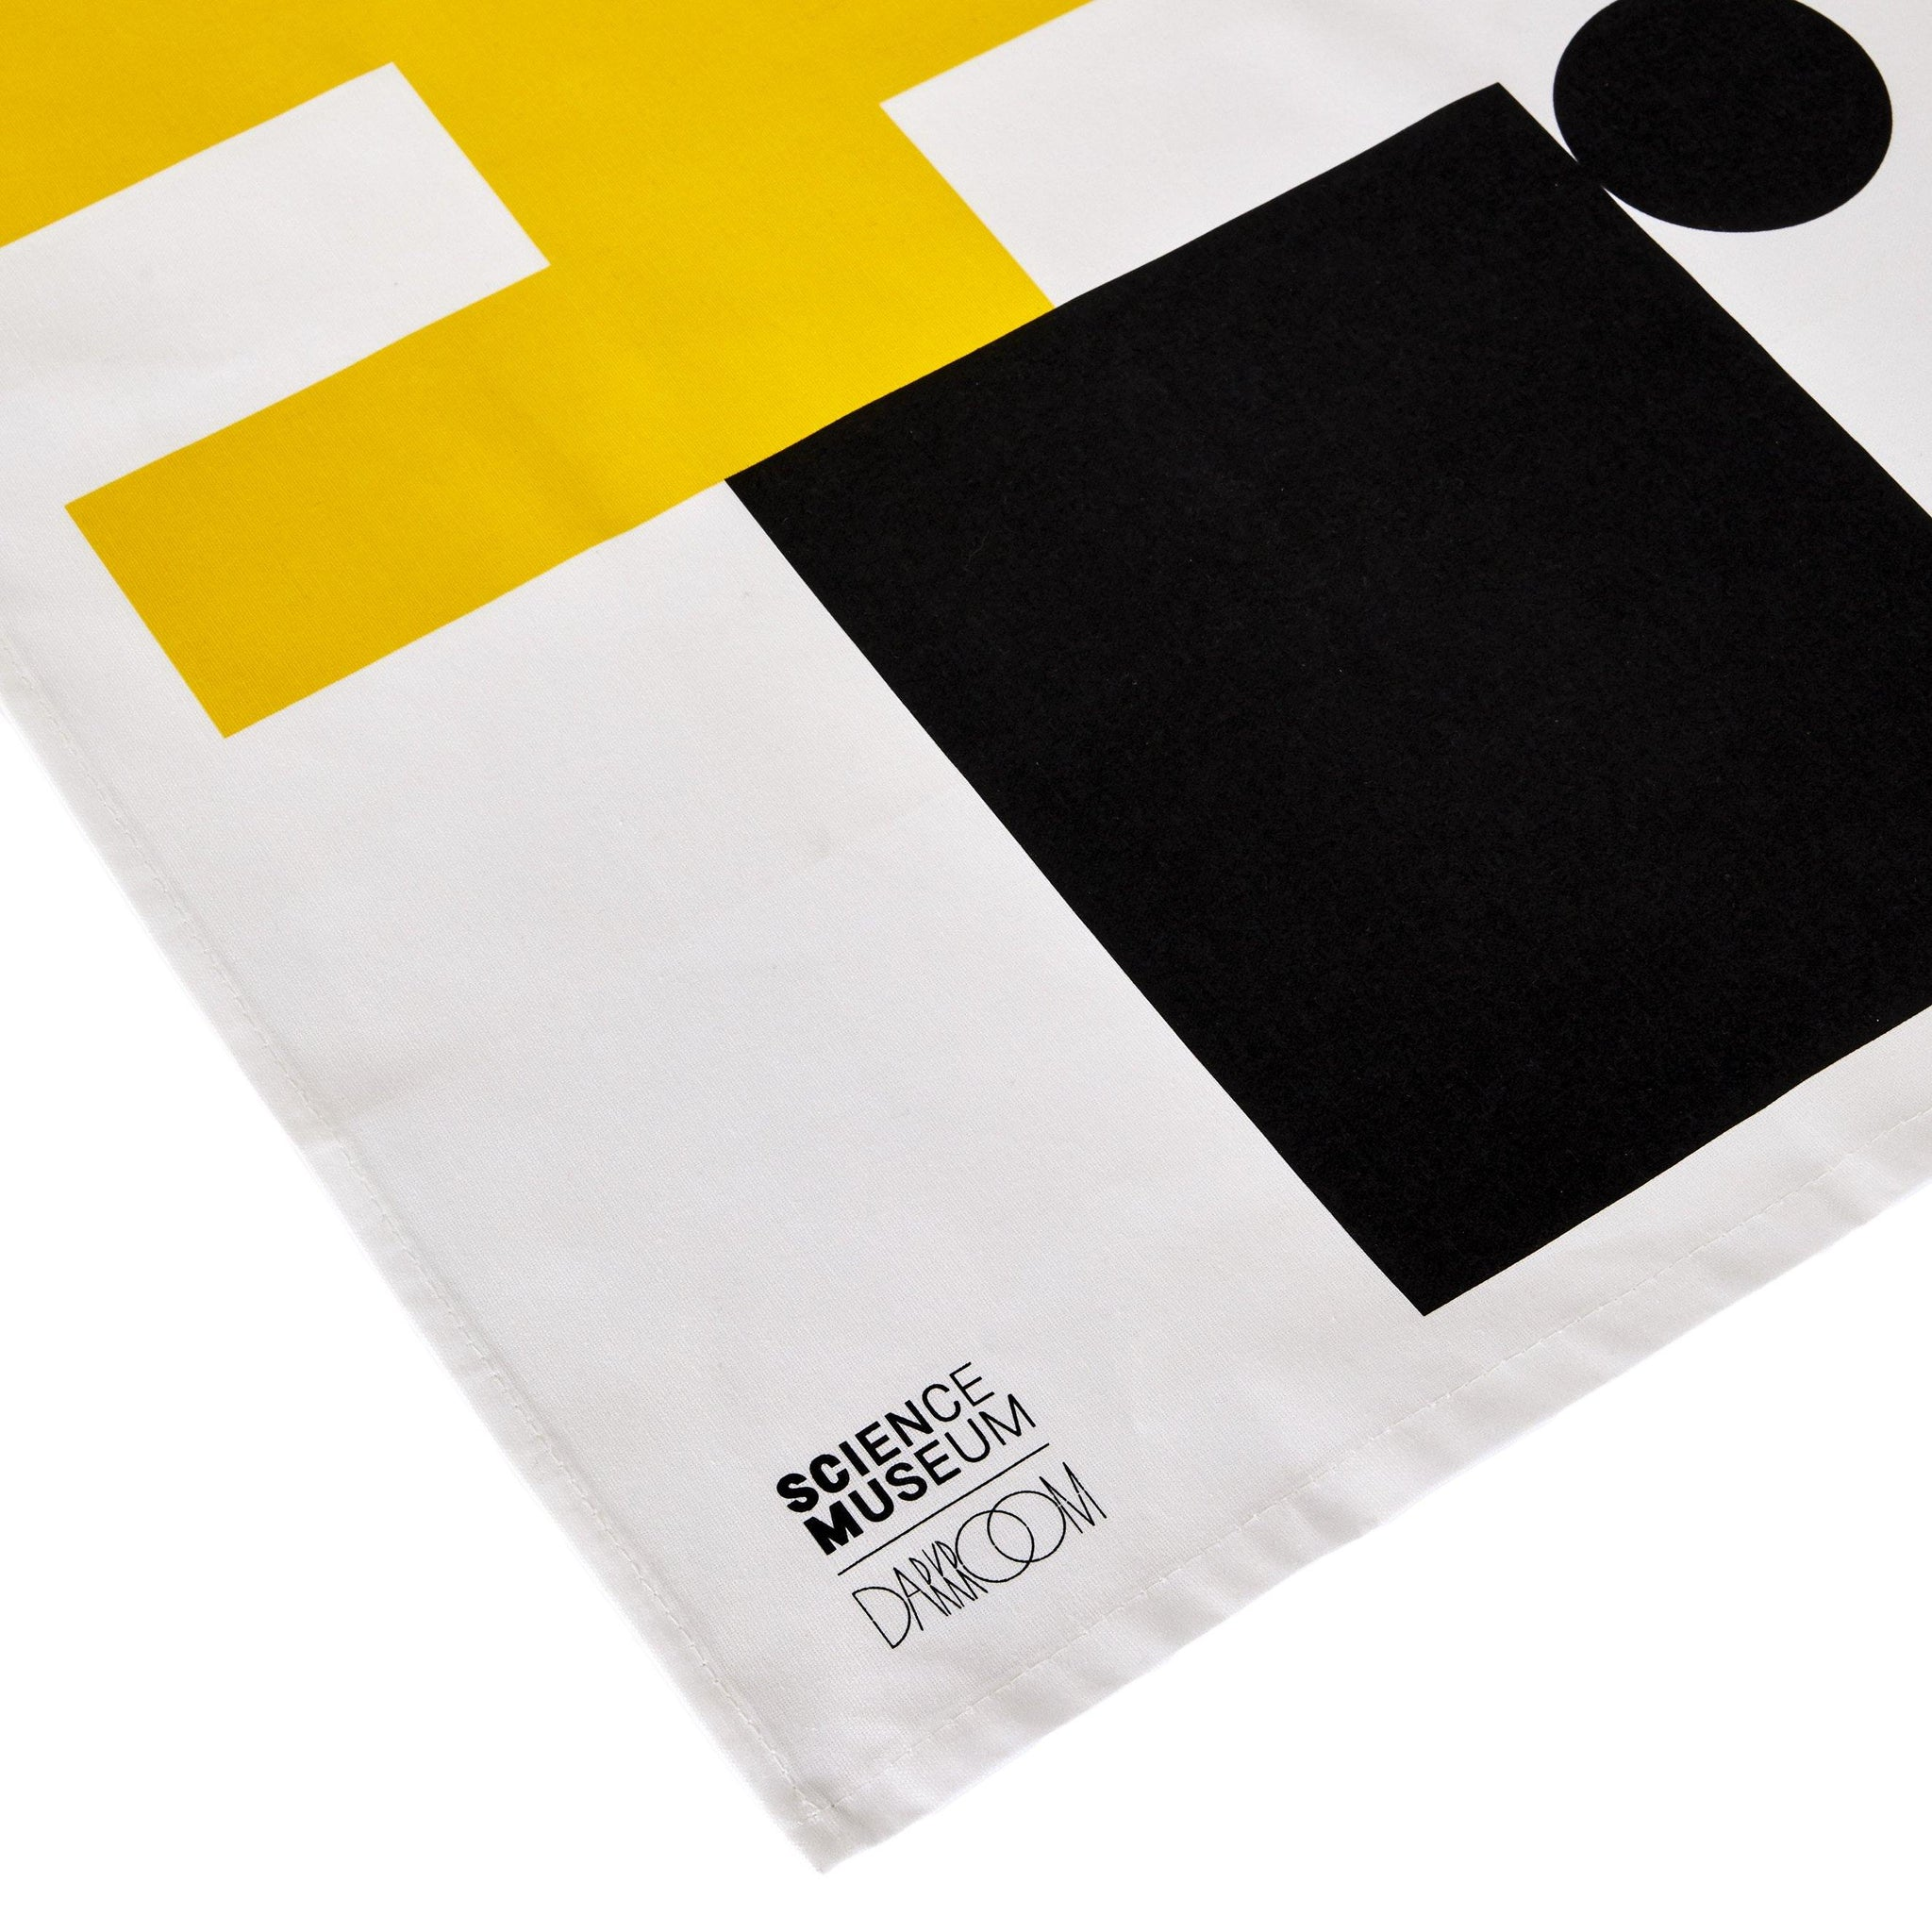 Science Museum Impossible Machines Tea Towel Yellow/Black 2